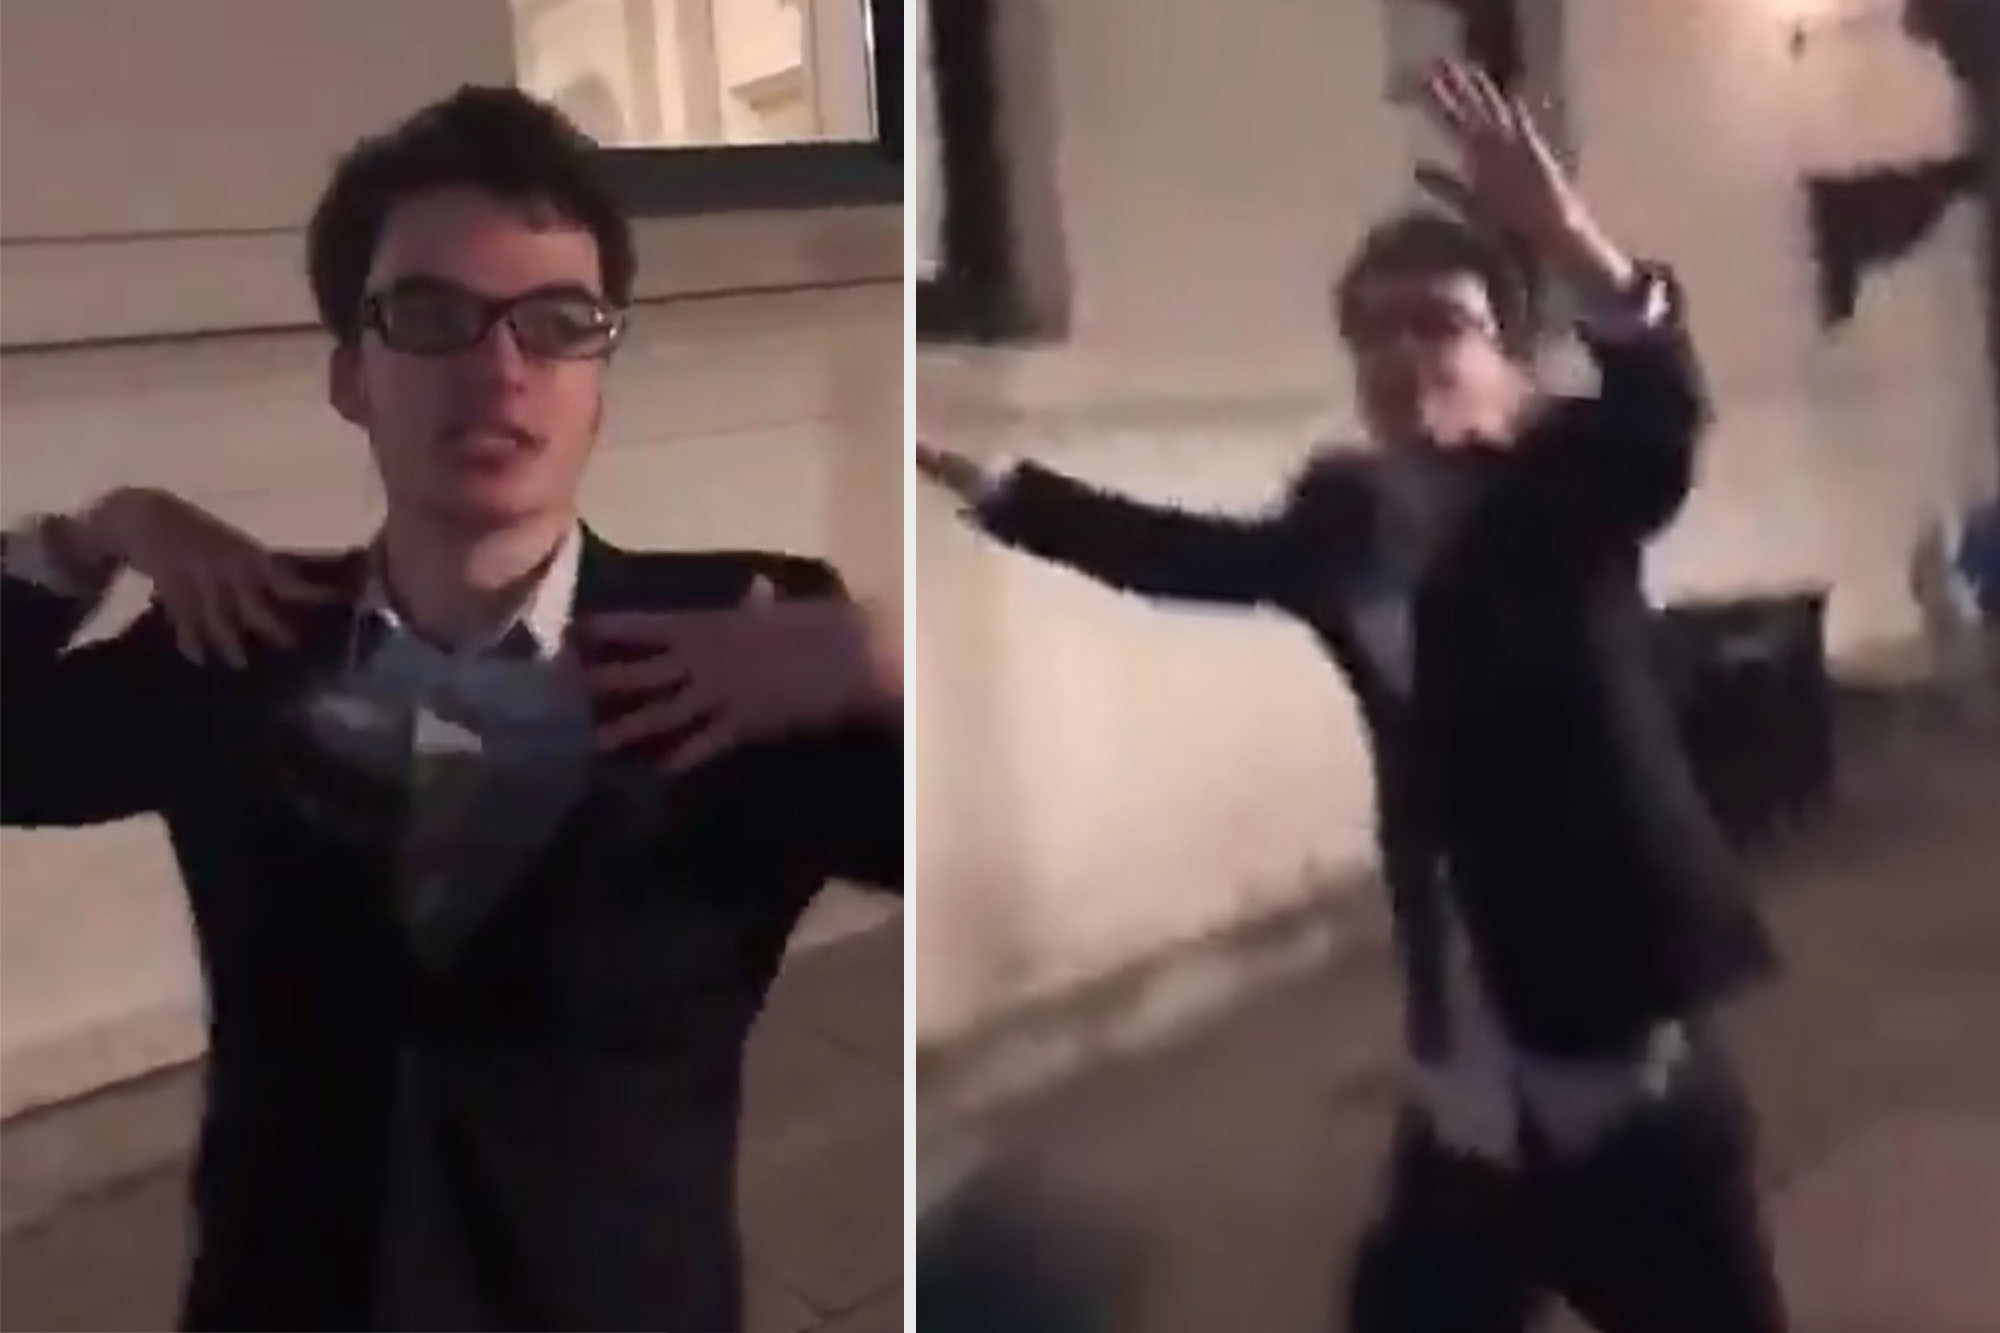 Columbia student who went on racist tirade: I'm not racist